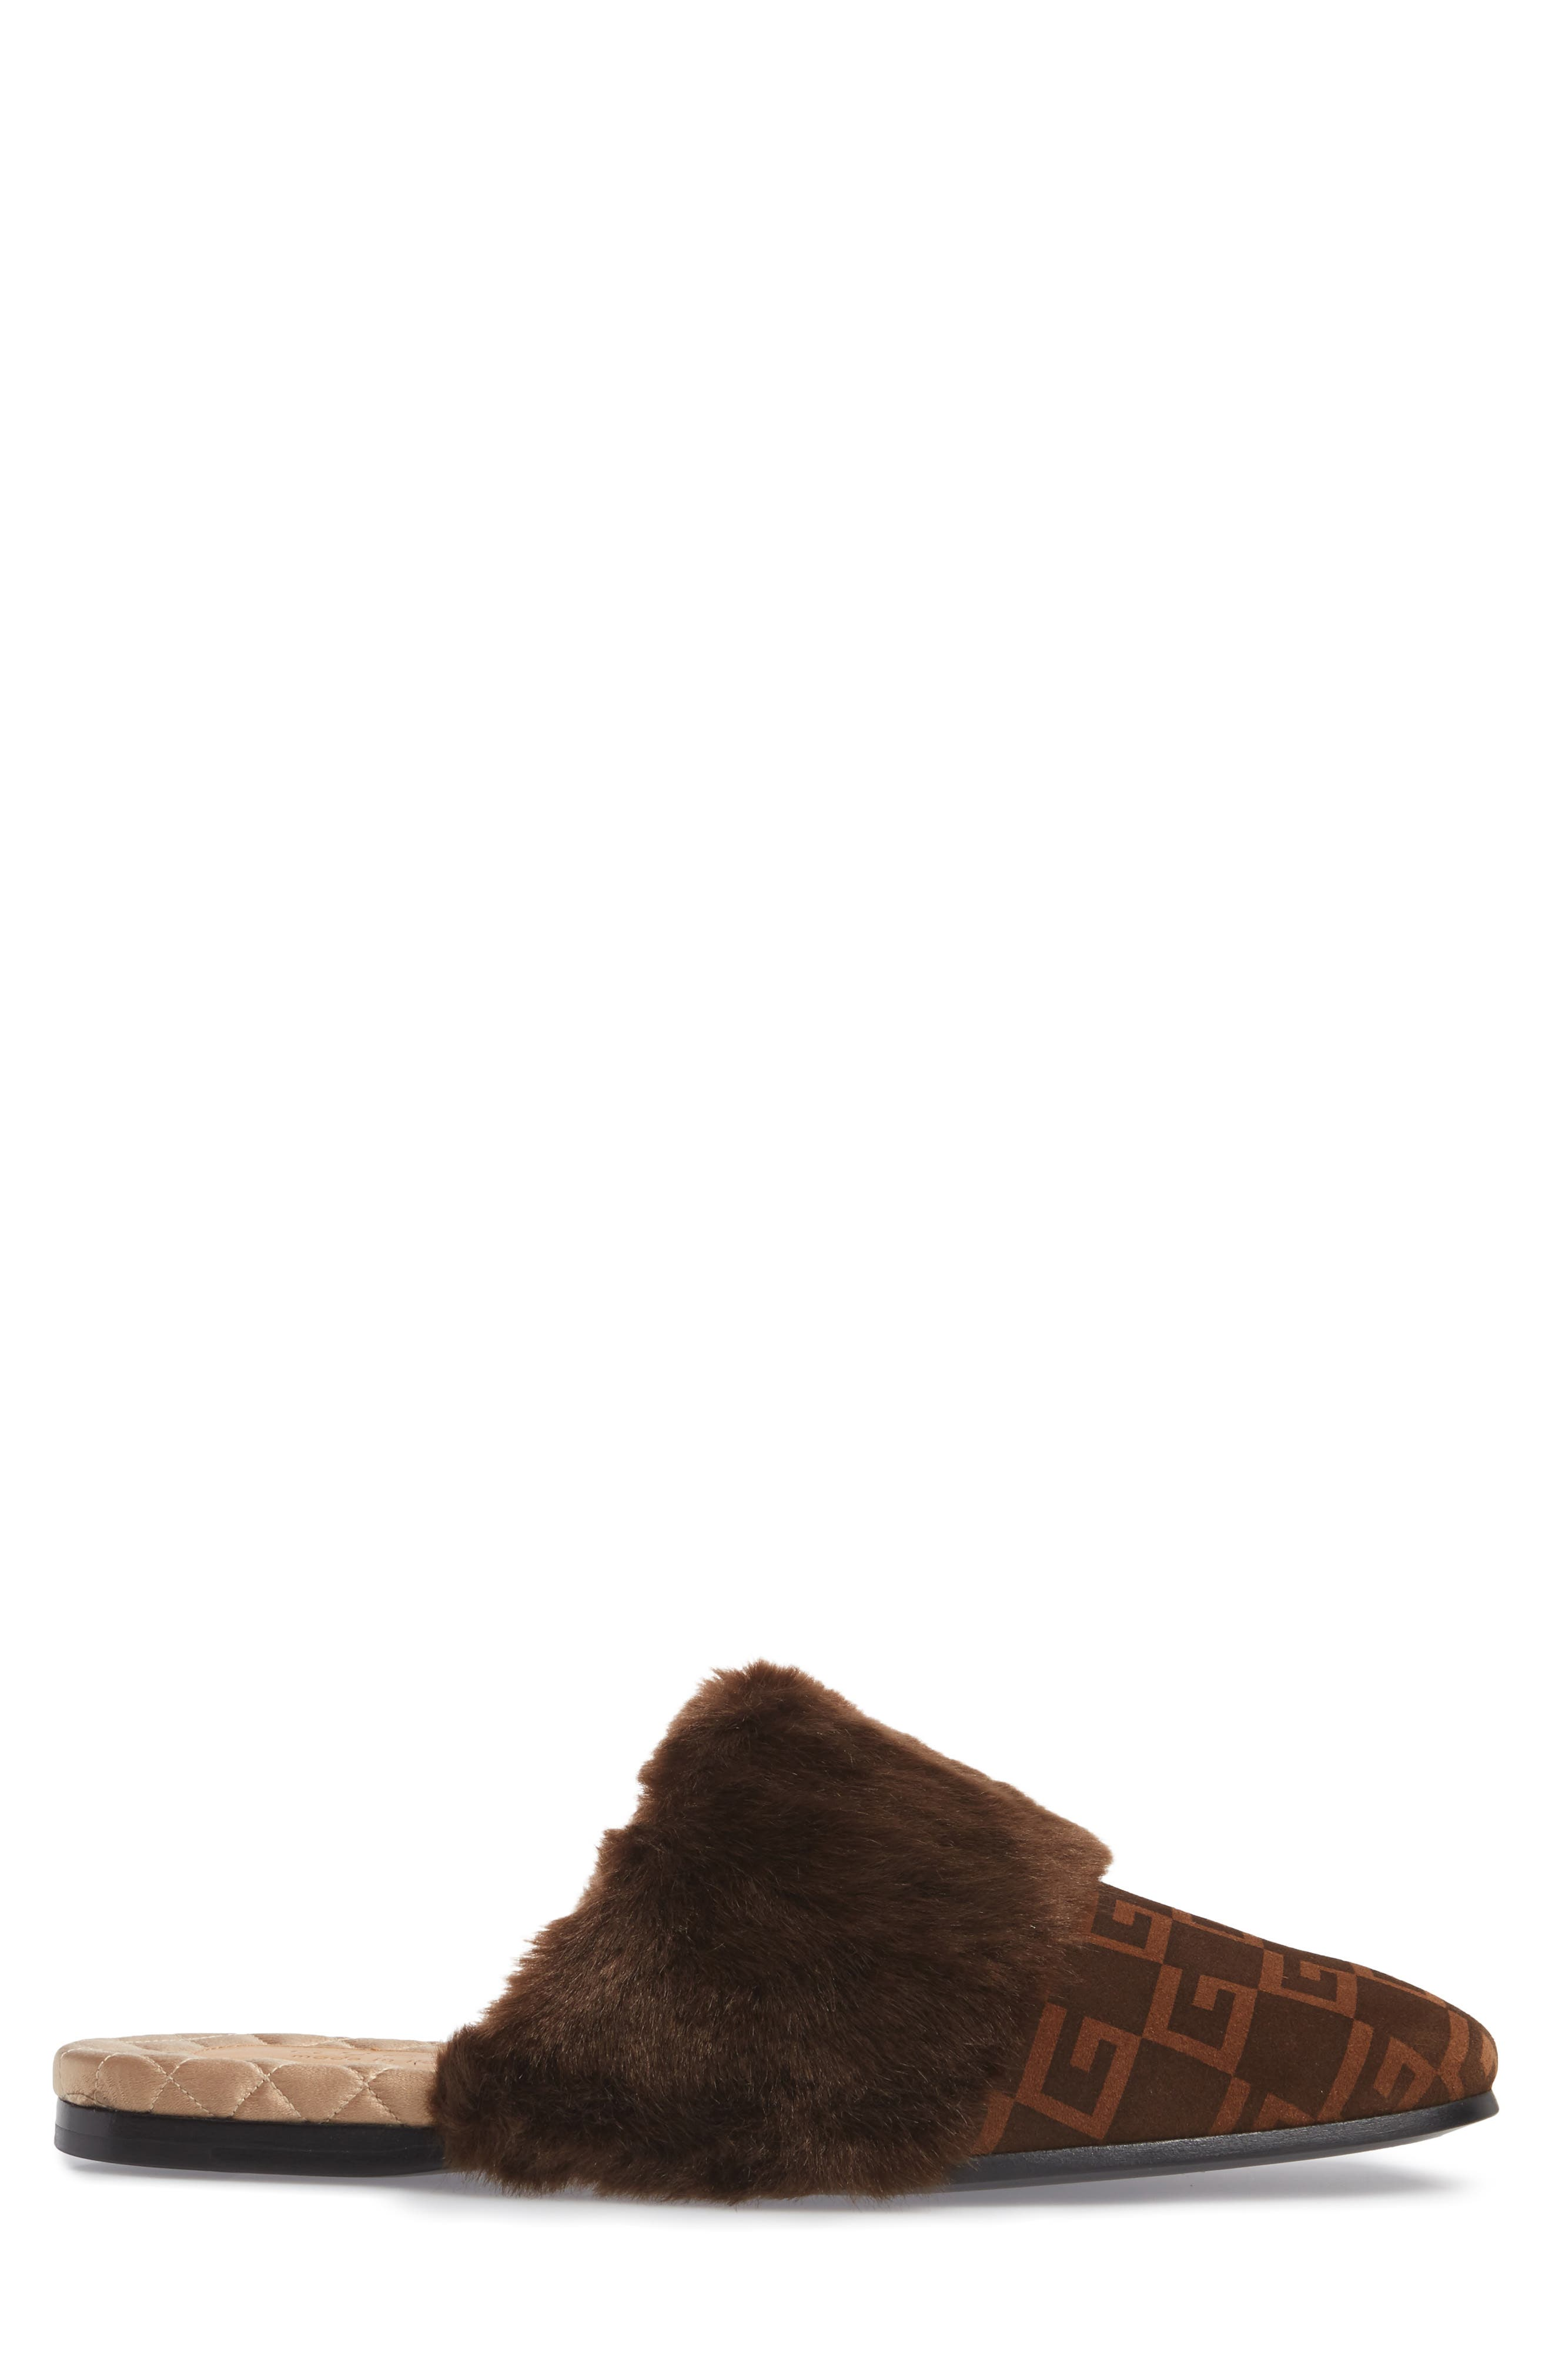 Lawrence Square-G Faux Fur Slipper,                             Alternate thumbnail 3, color,                             Brown/ Sigaro